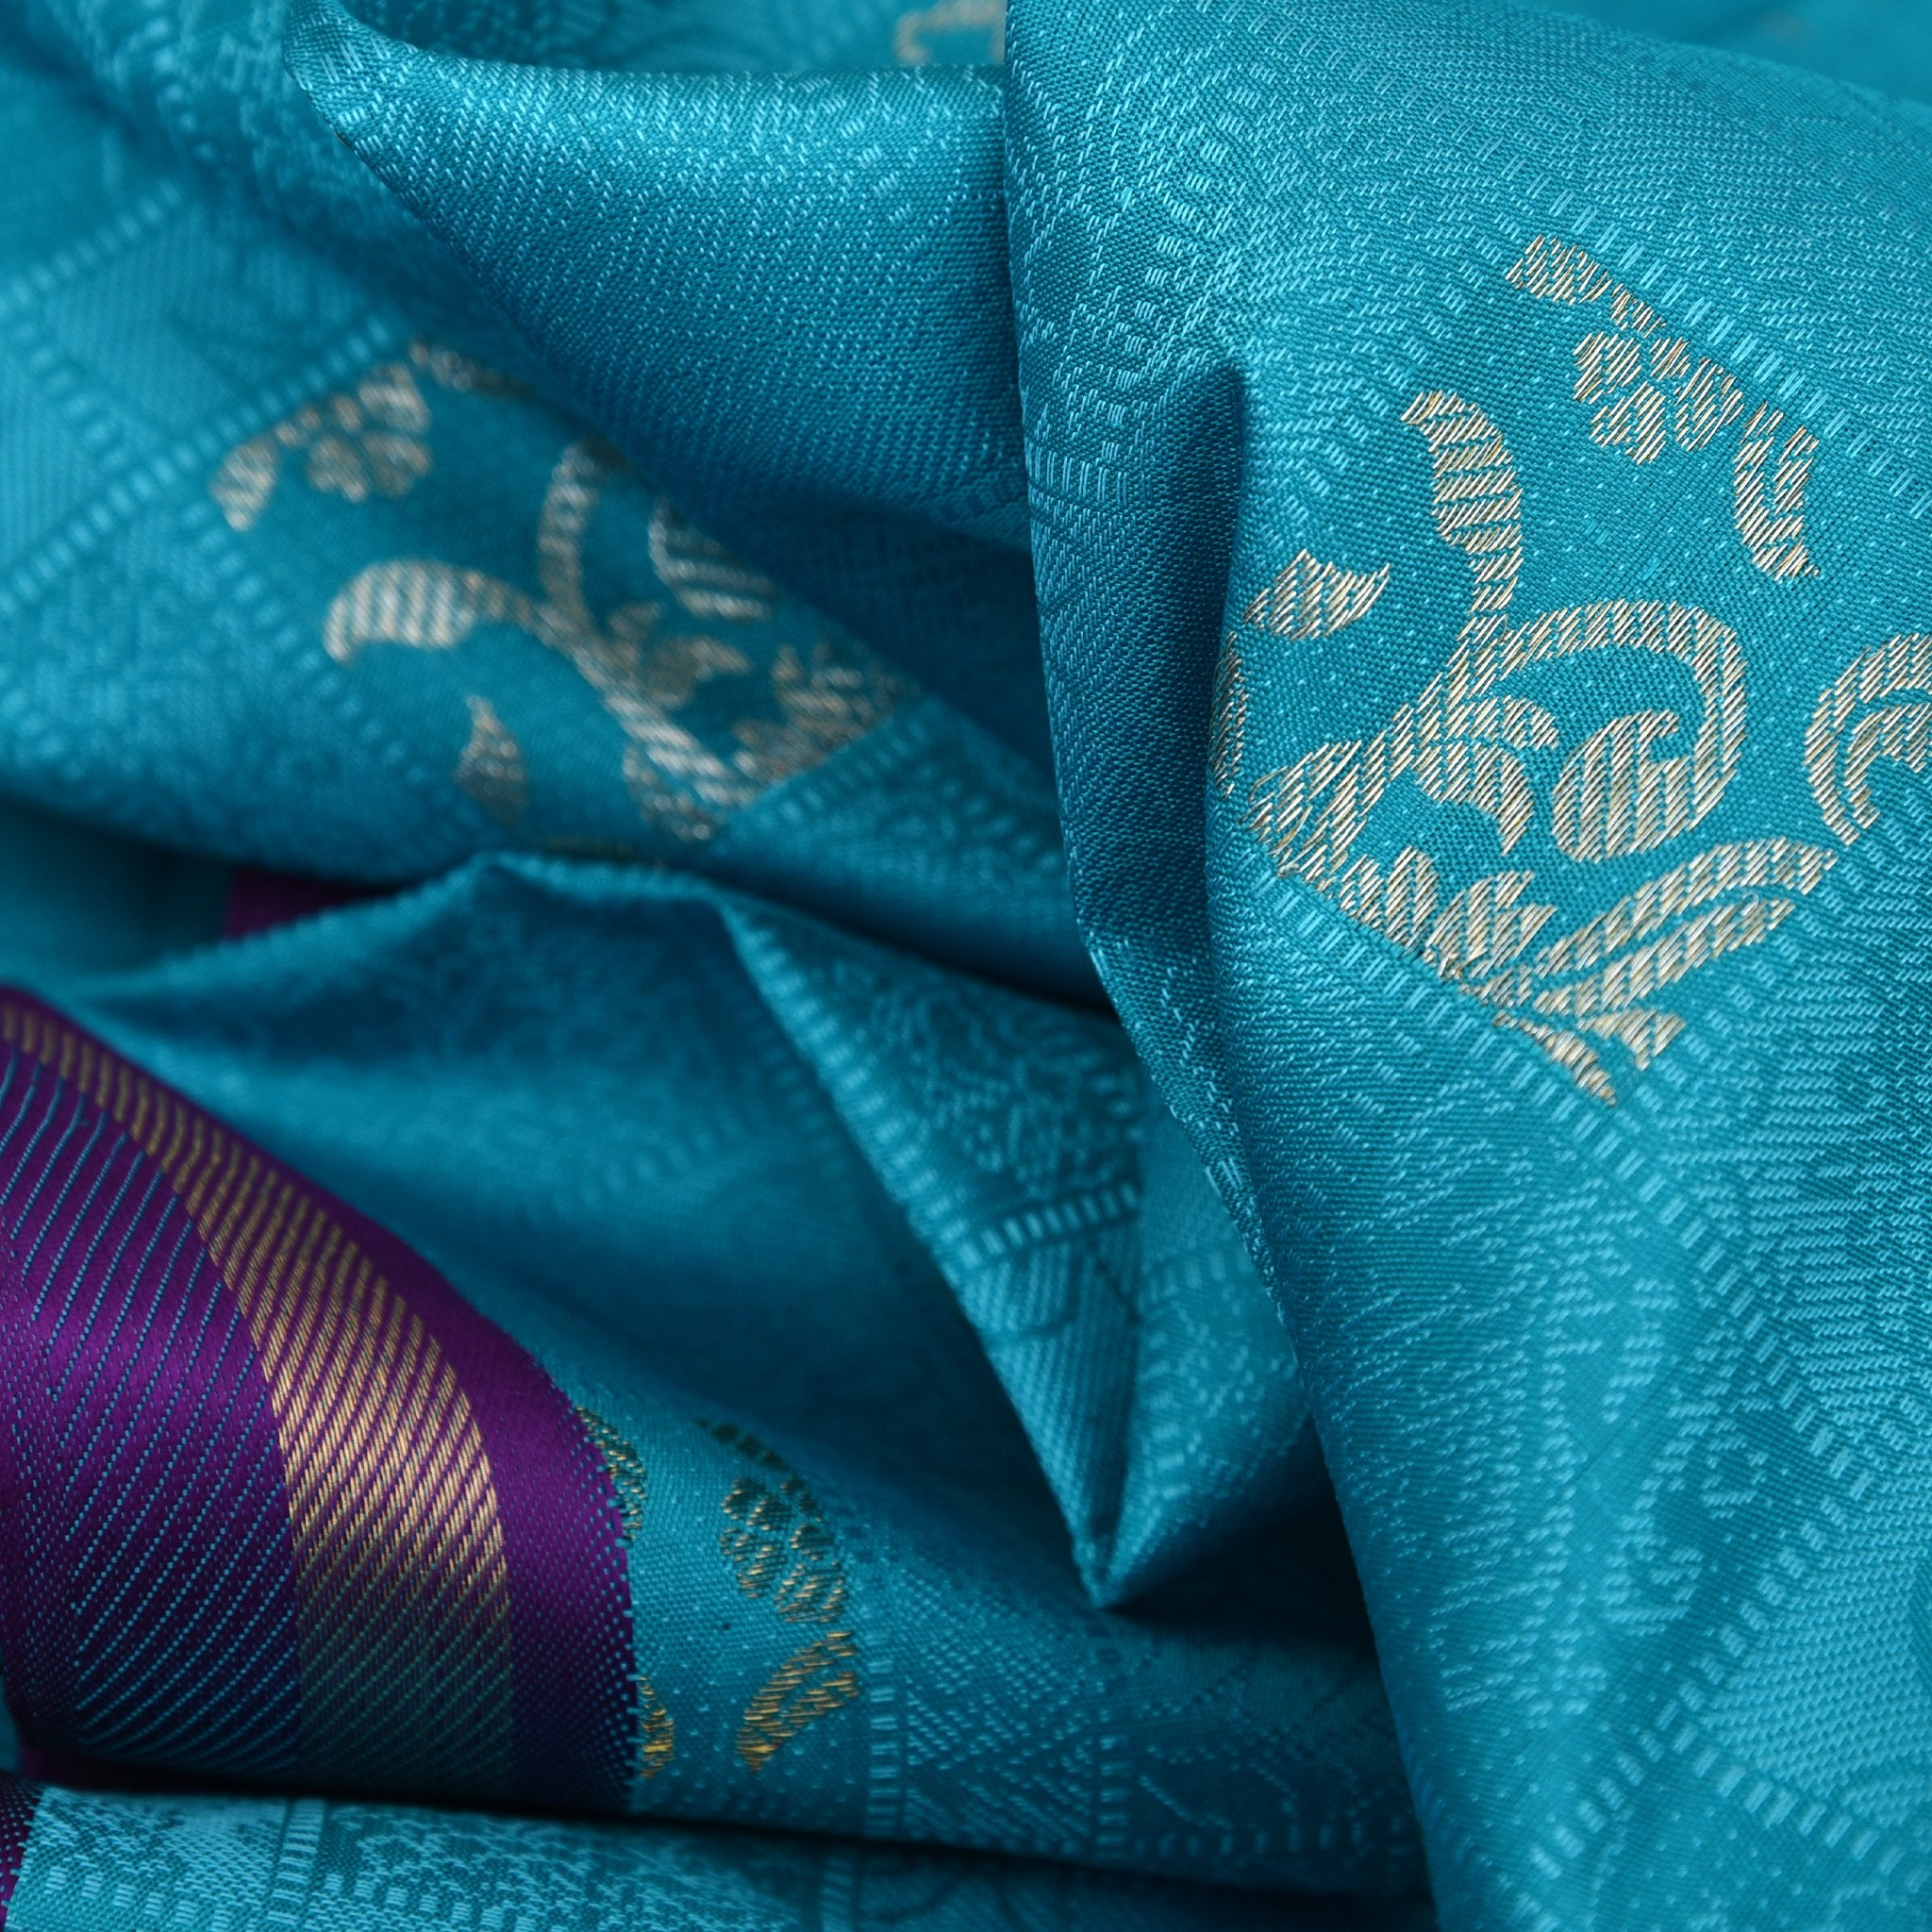 BB088303-Teal Blue self-woven Borderless Kanjivaram Handloom Silk Saree